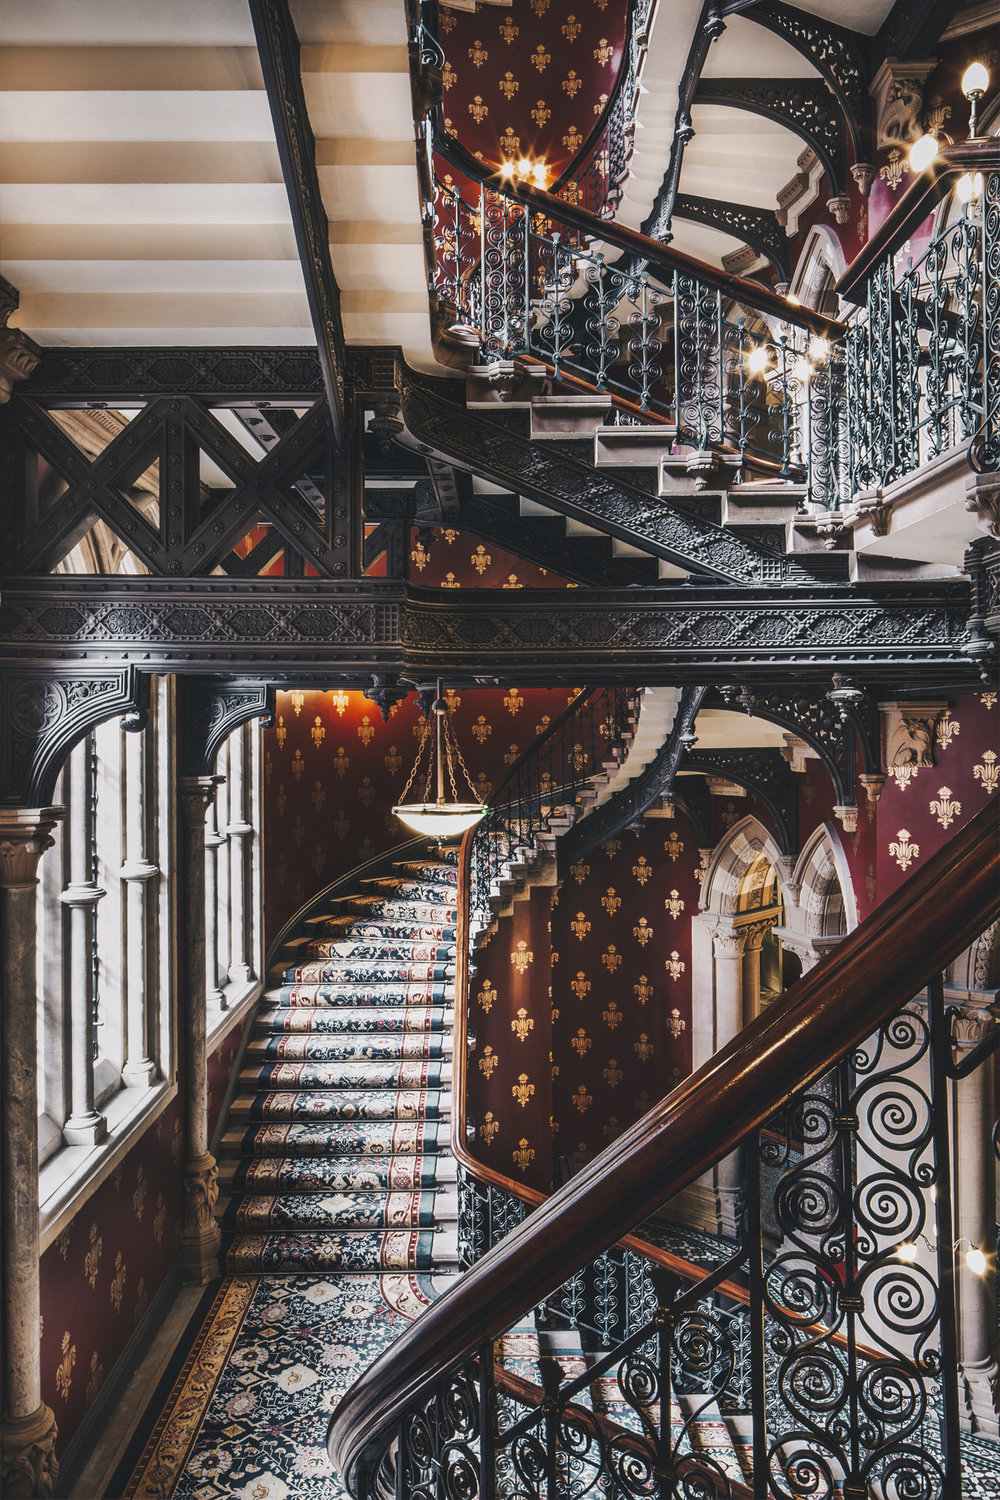 The Renaissance Hotel, St Pancras - The Brief : Interior photography to support new website launch